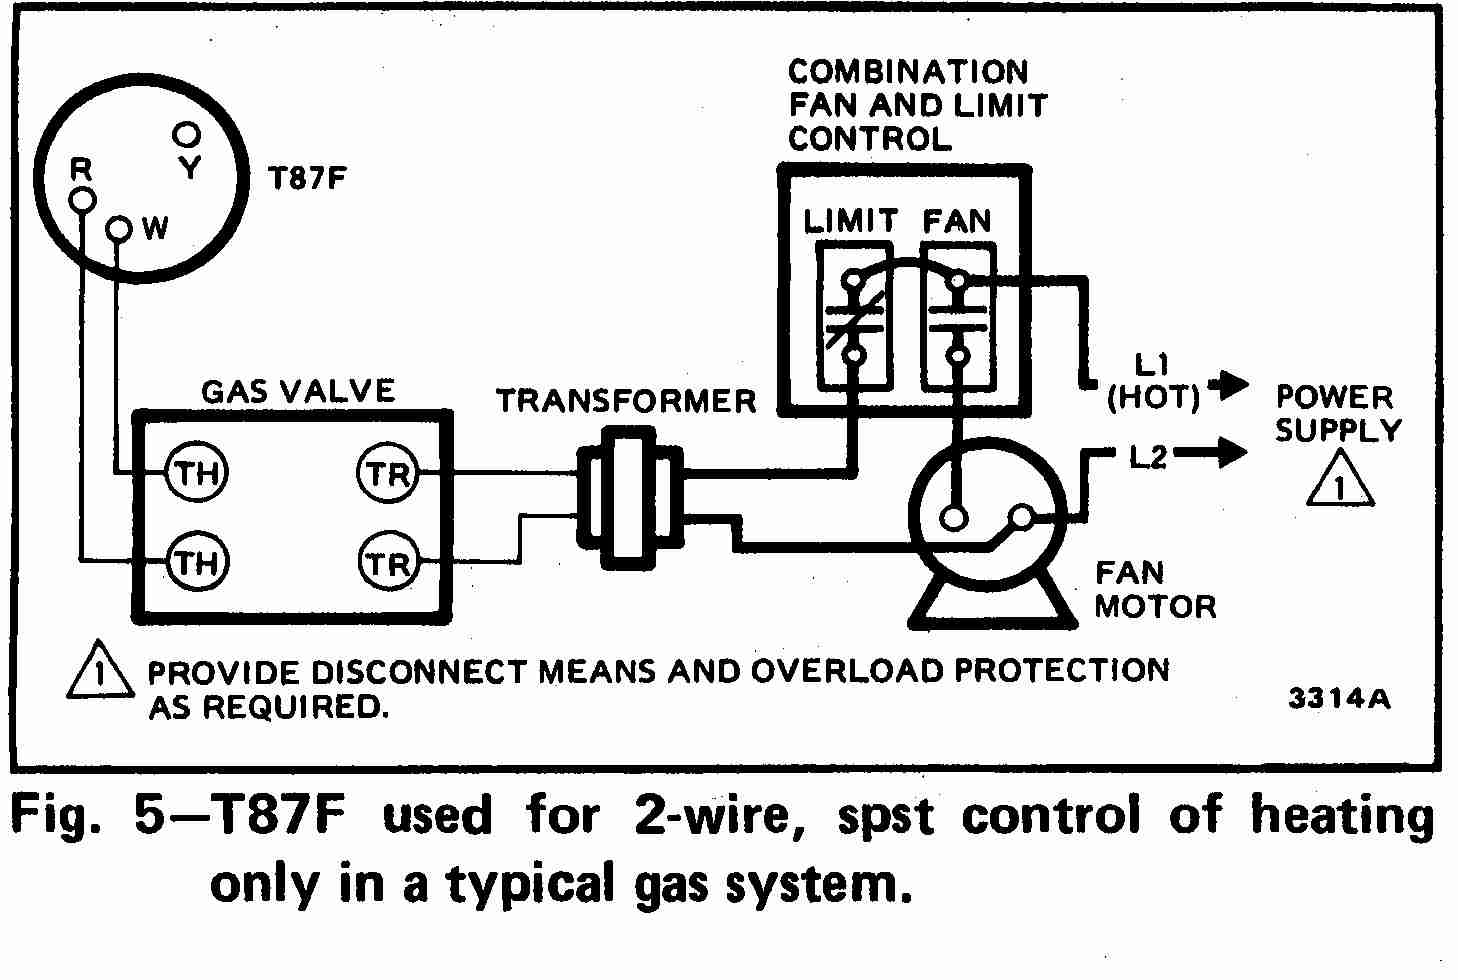 TT_T87F_0002_2Wg_DJF room thermostat wiring diagrams for hvac systems residential hvac wiring diagrams at soozxer.org